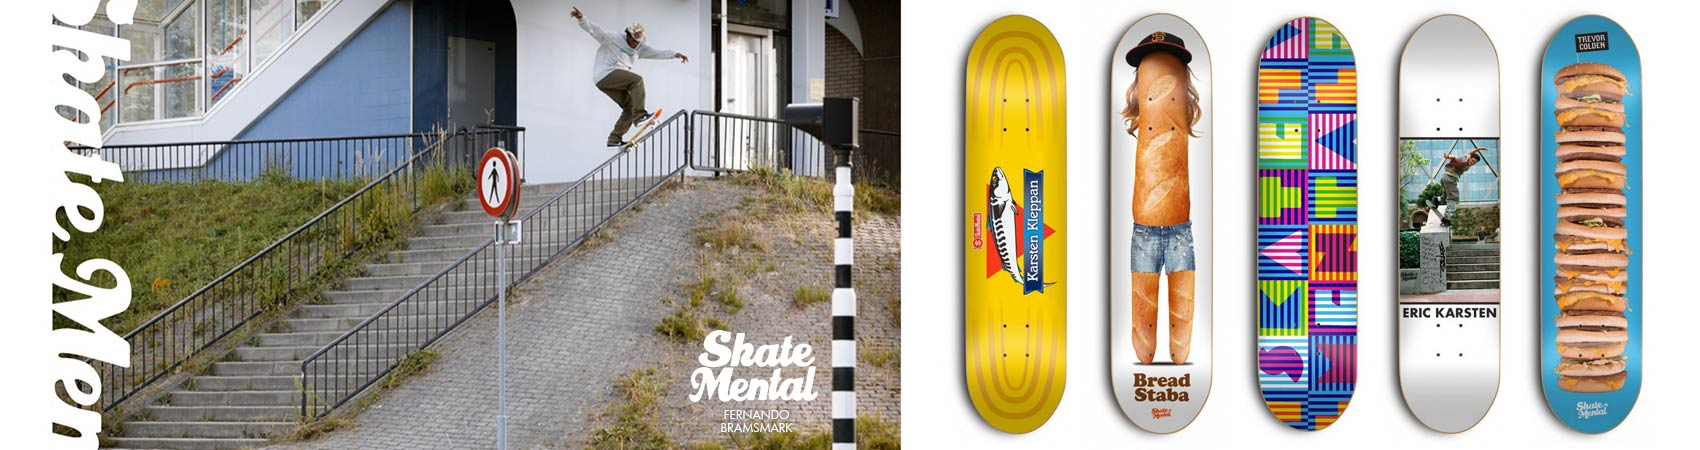 Skate Mental Digital Banner